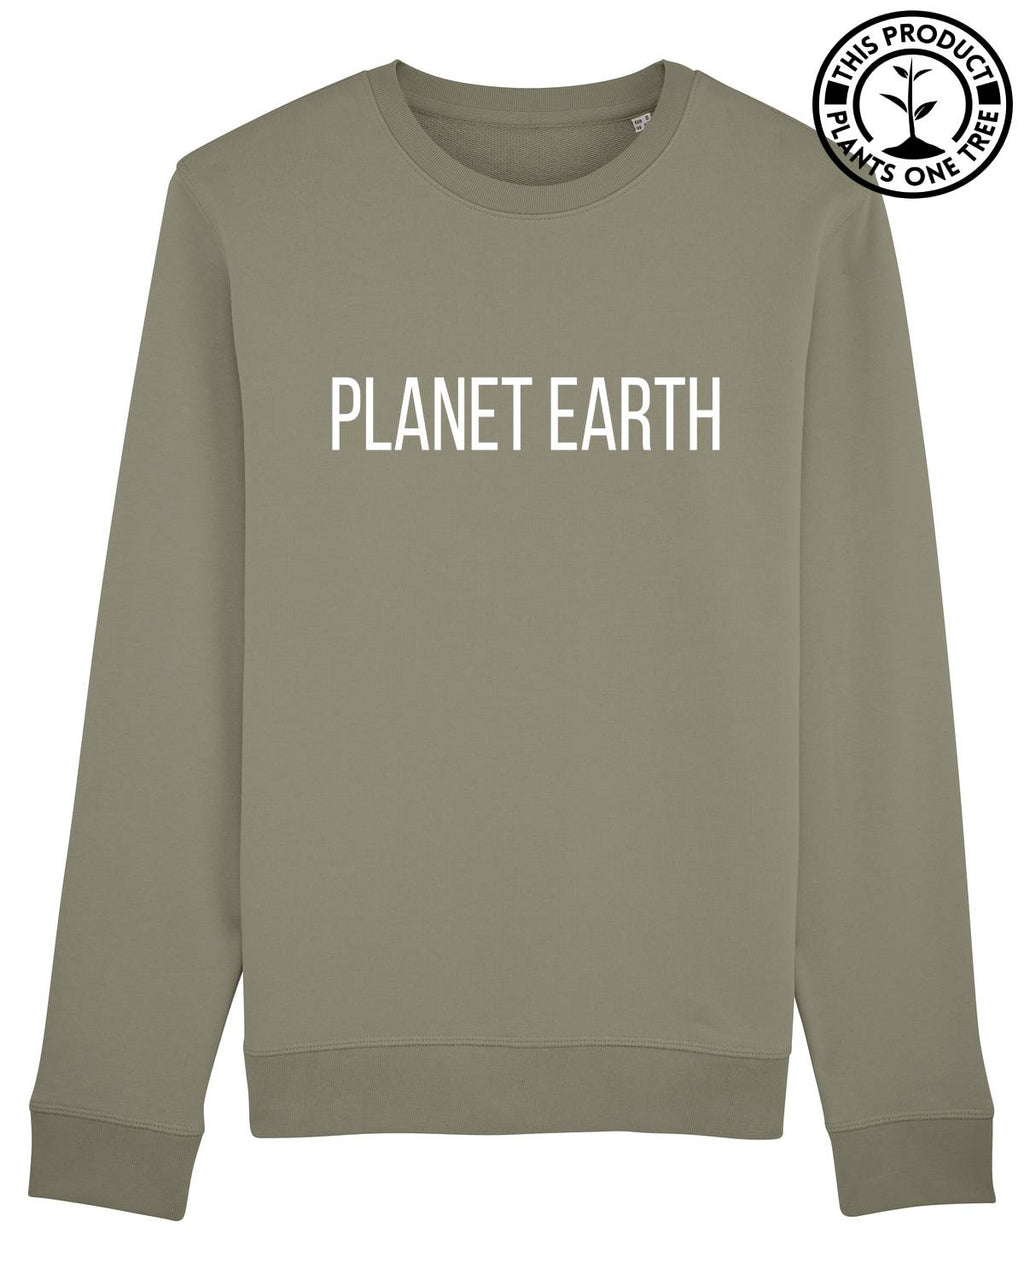 Planet Earth Unisex Sweatshirt